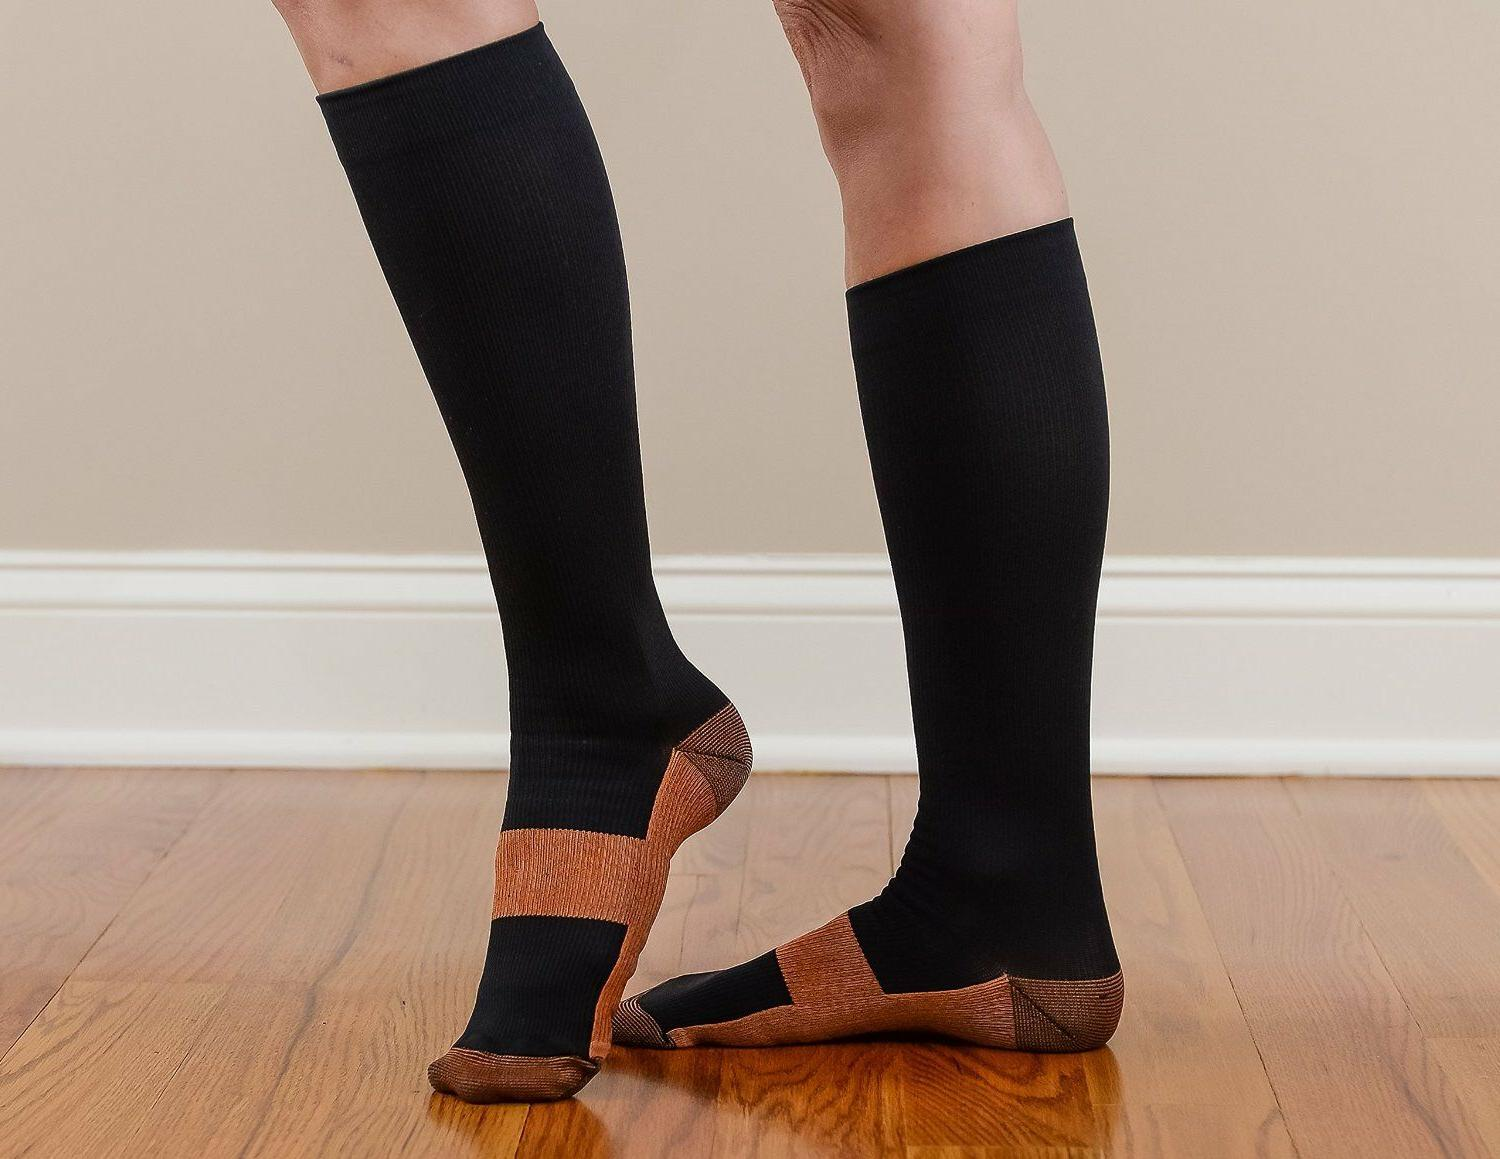 Copper Compression Socks 20-30mmHg Graduated S-XXL 3 Pairs